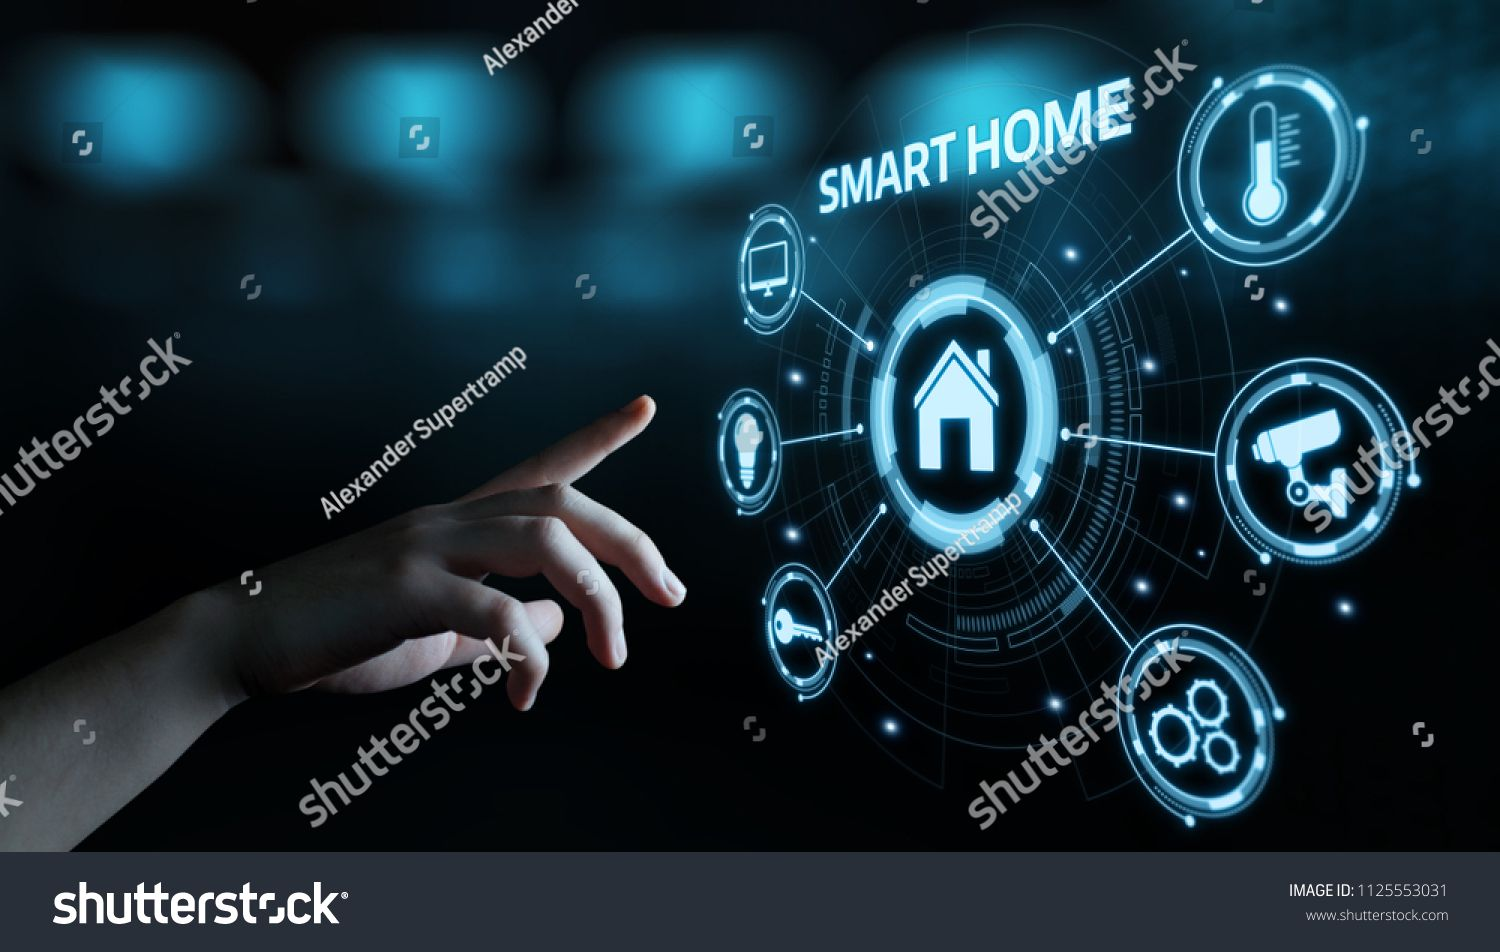 Smart Home Automation Control System Innovation Technology Internet Network Concept Control Syste Smart Home Automation Home Automation Innovation Technology